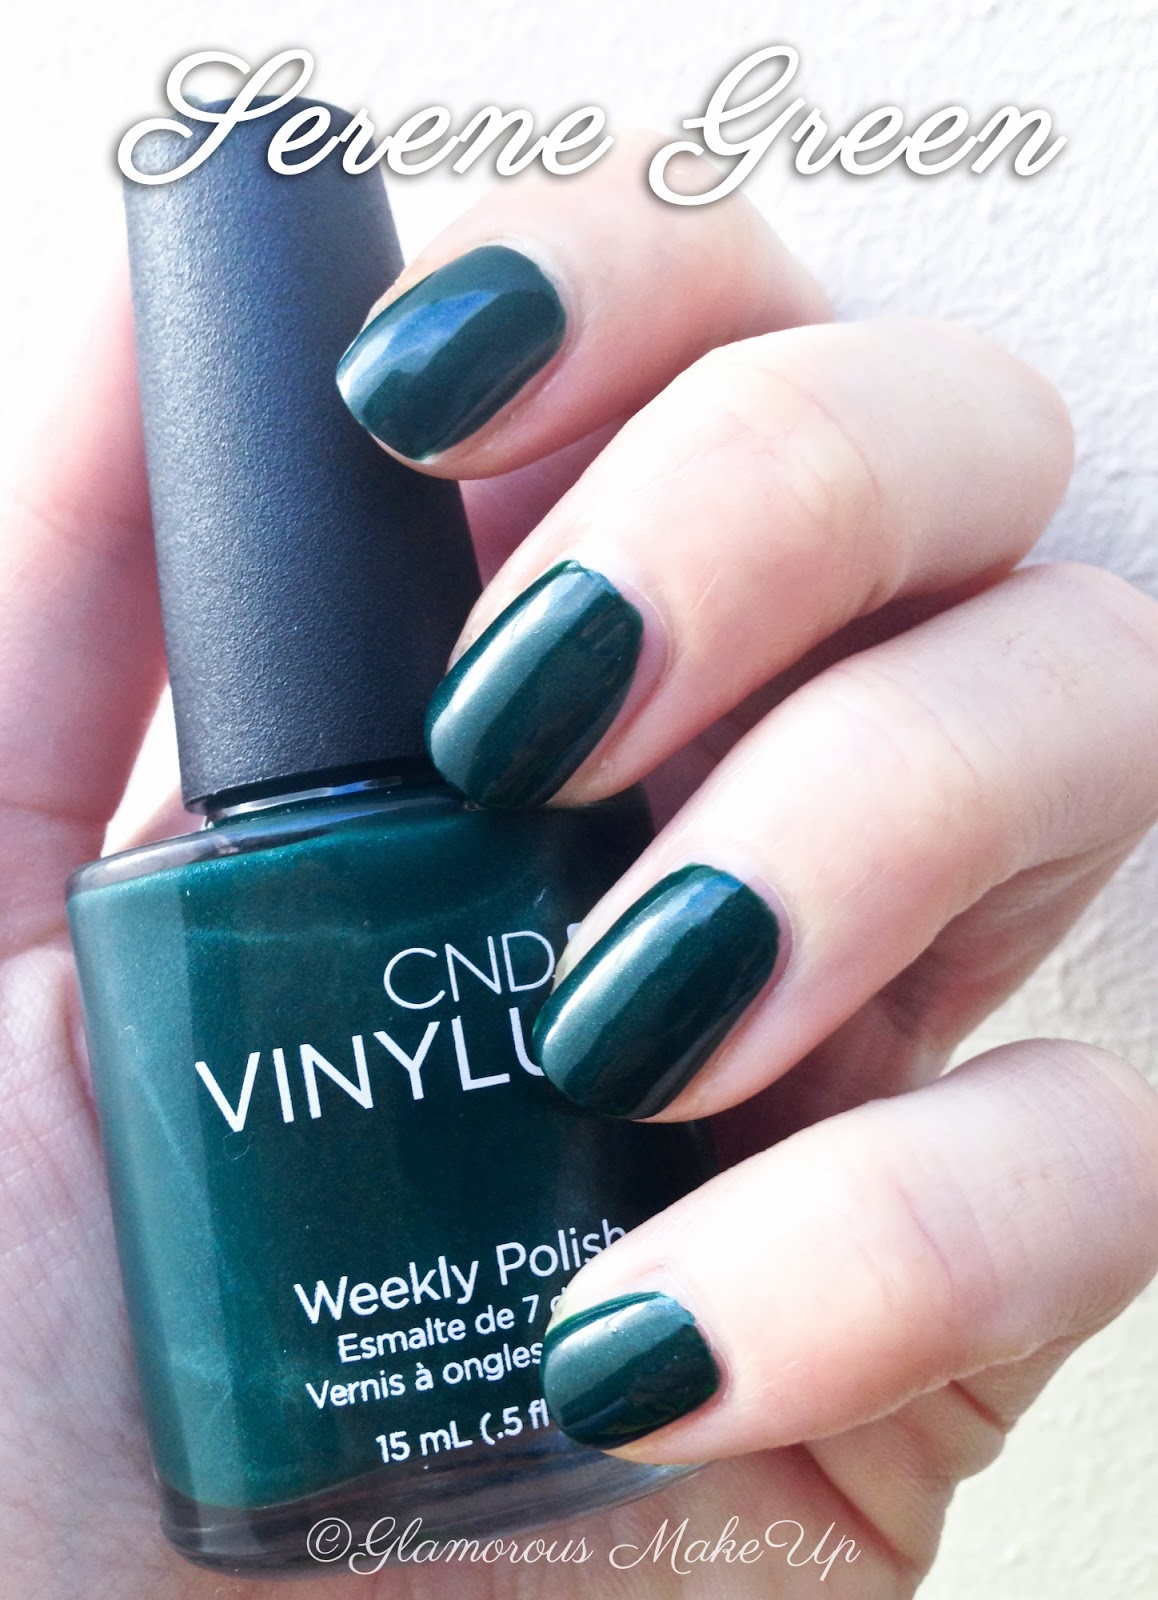 cnd vinylux vexed violet serene green review swatches glamorous makeup. Black Bedroom Furniture Sets. Home Design Ideas